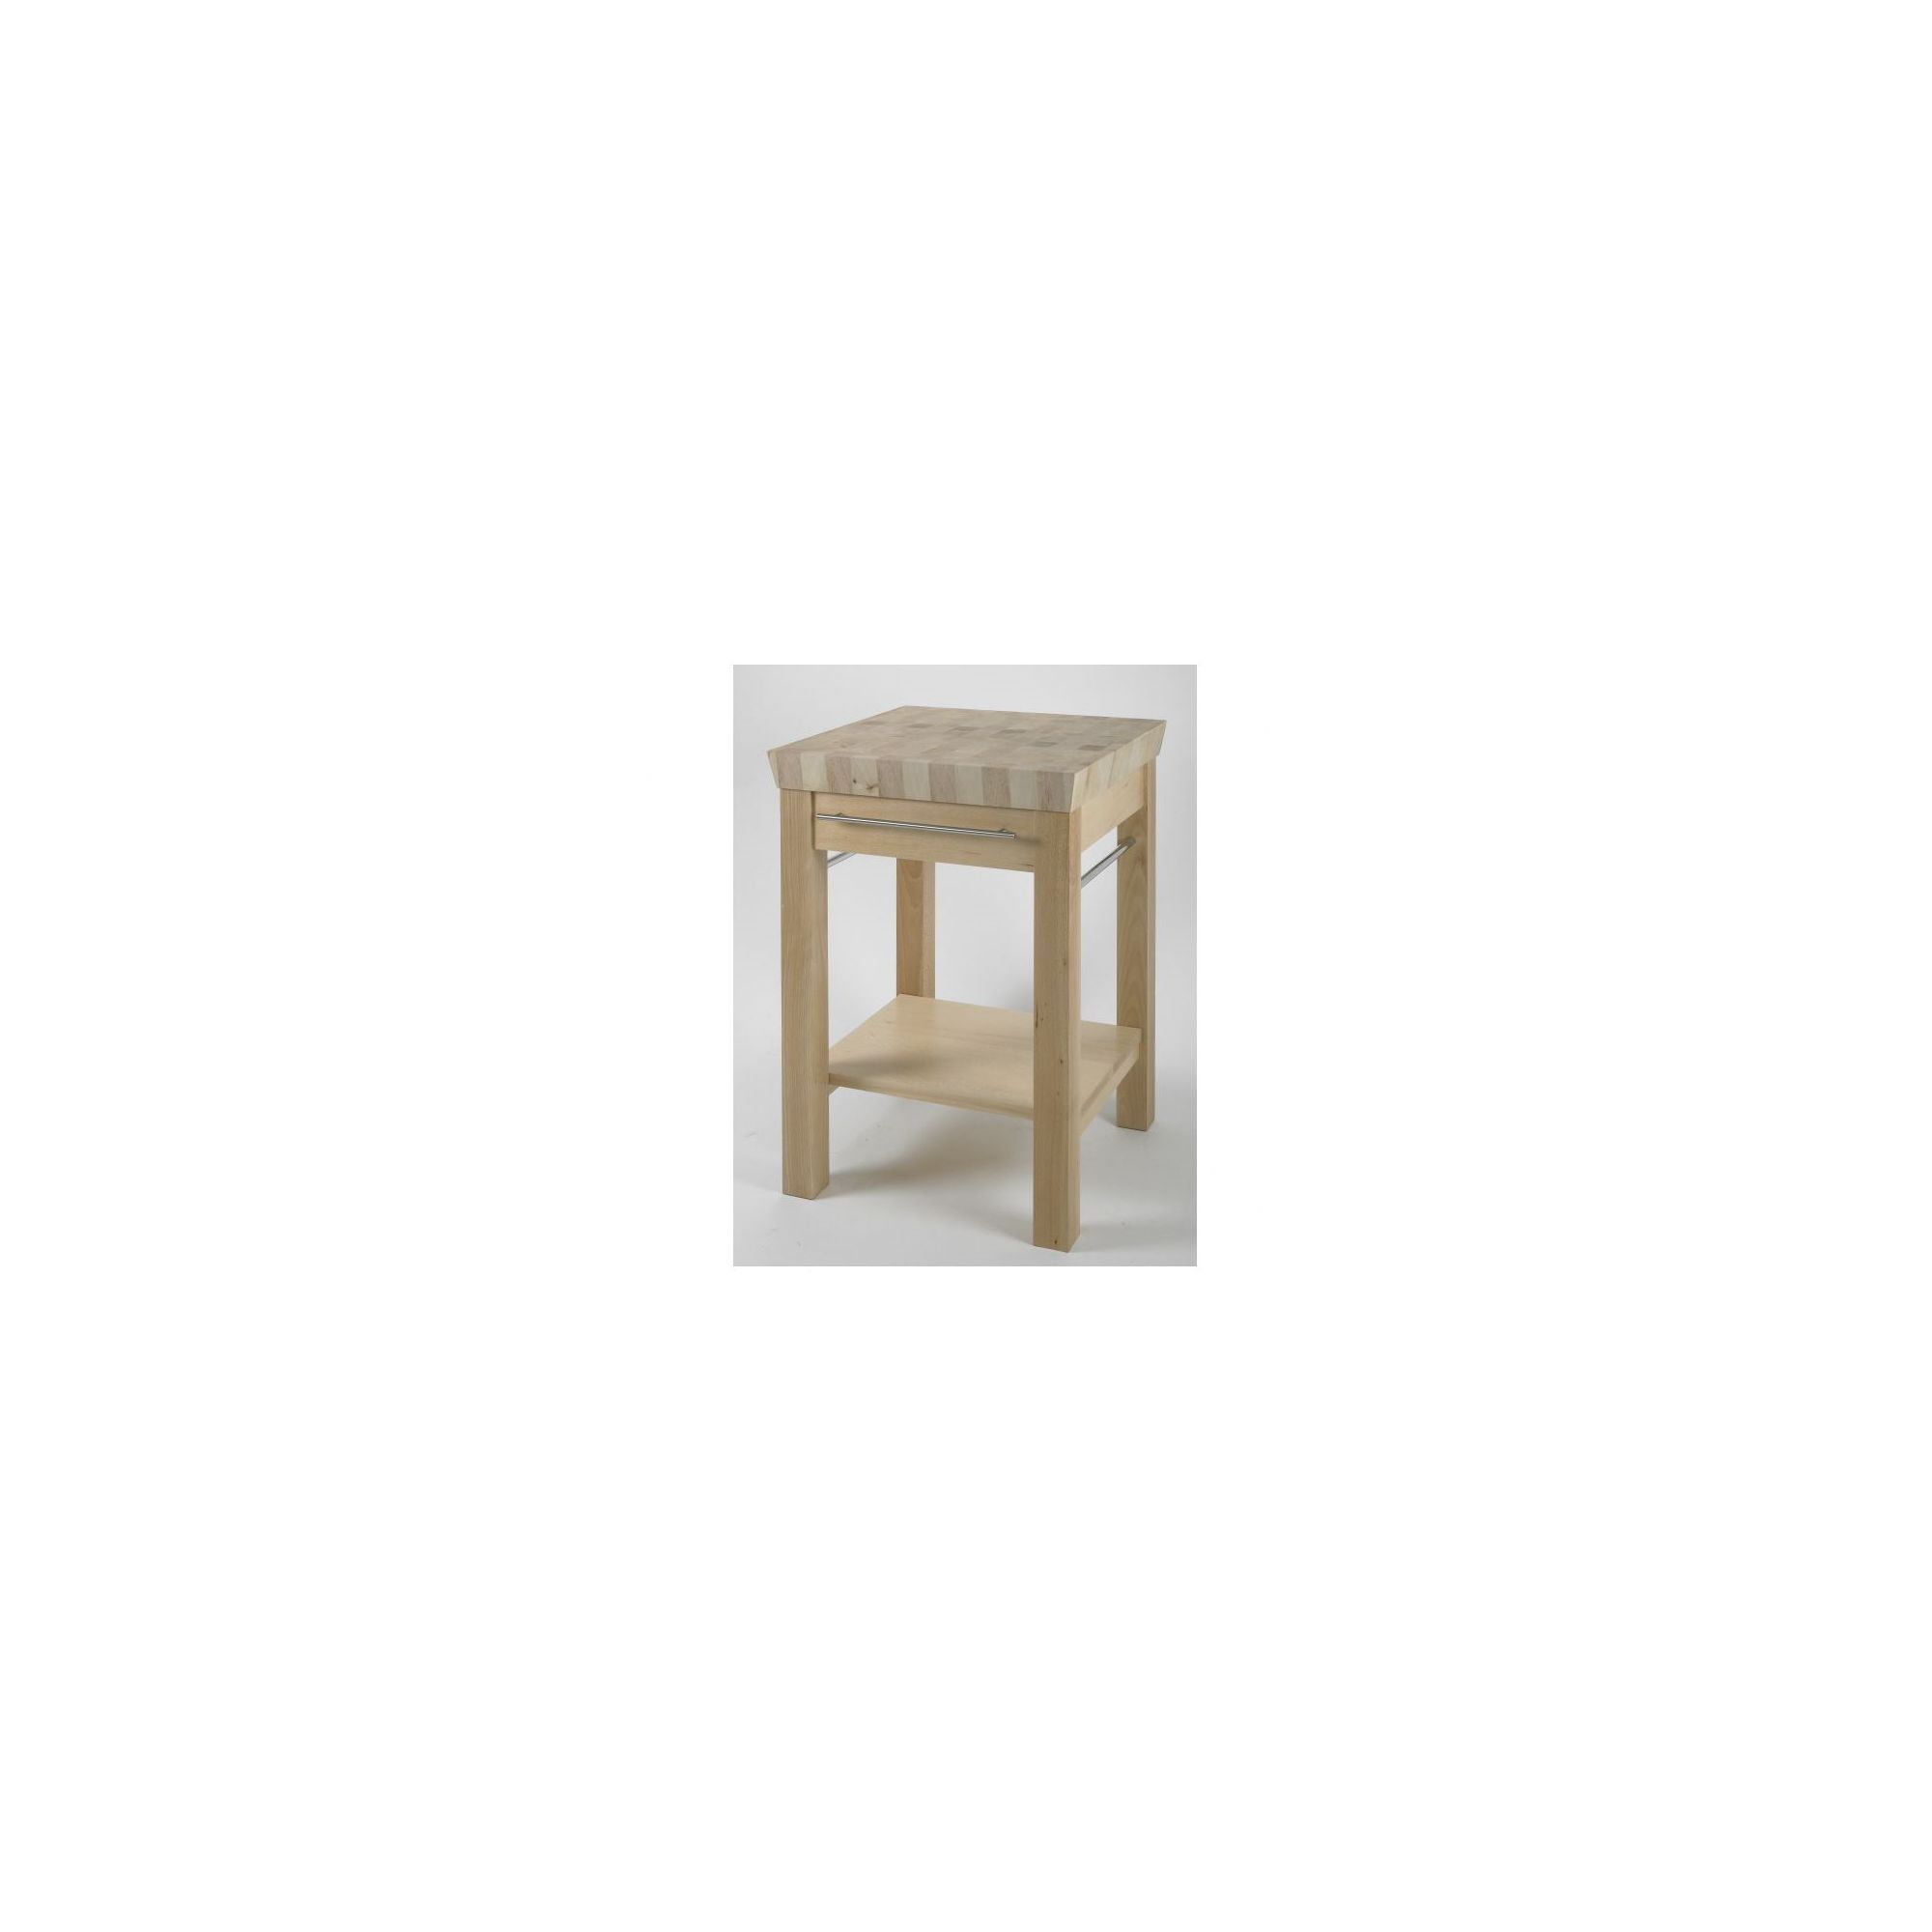 Chabret Occasional Furniture - 85cm X 80cm X 60cm at Tesco Direct